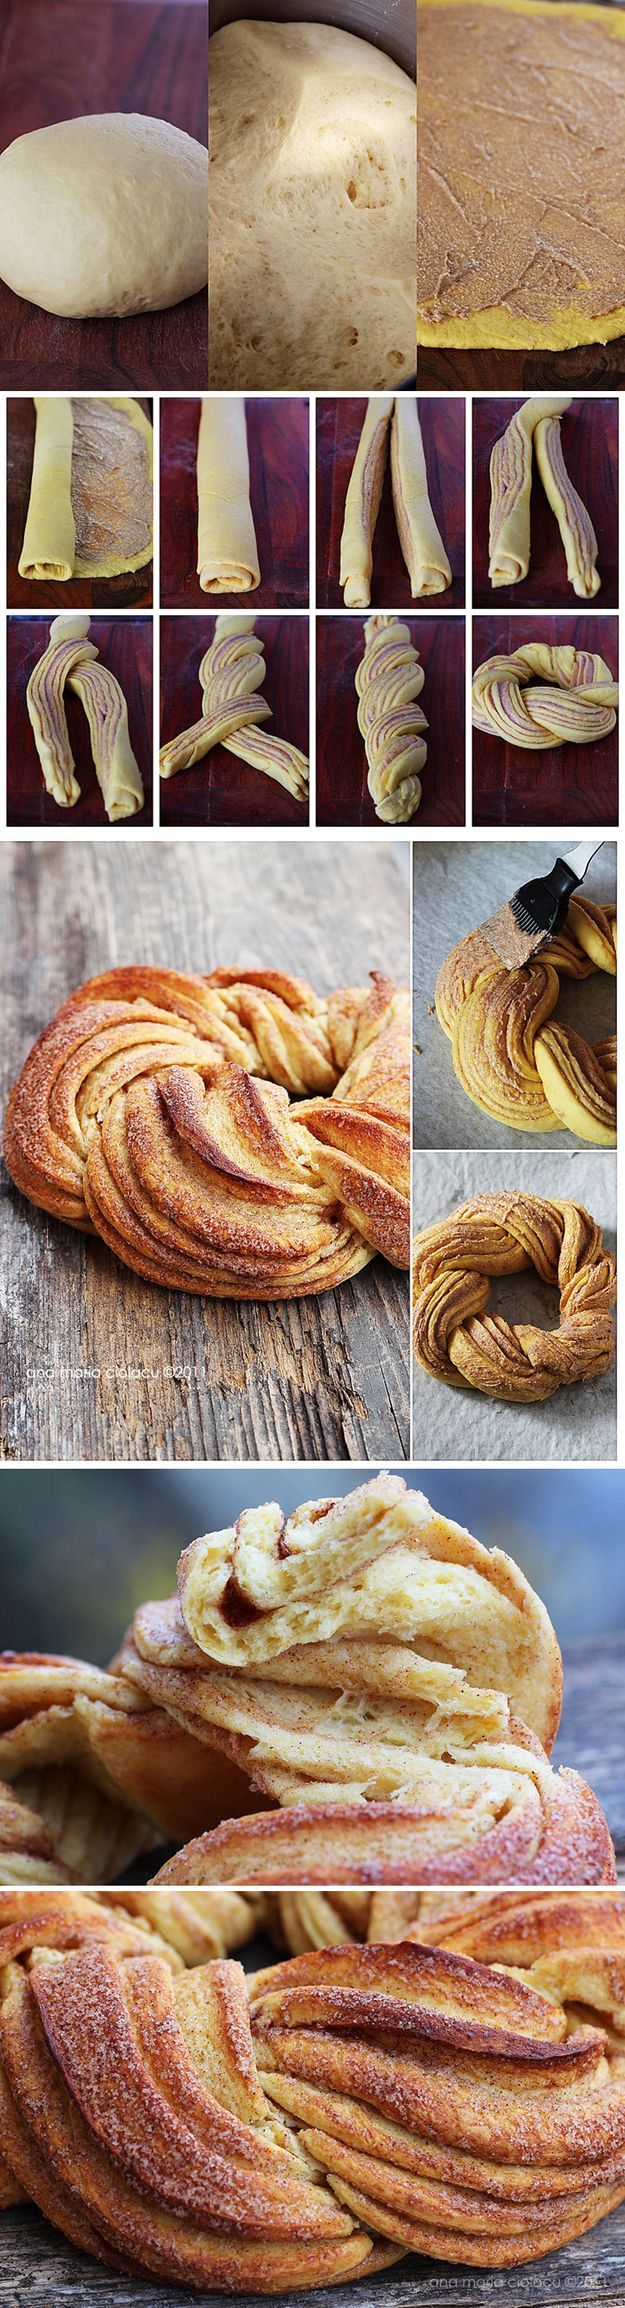 Estonian Braided Cinnamon Bread Is A Beautiful Miracle. Nothing like some warm cinnamon bread in the winter!~